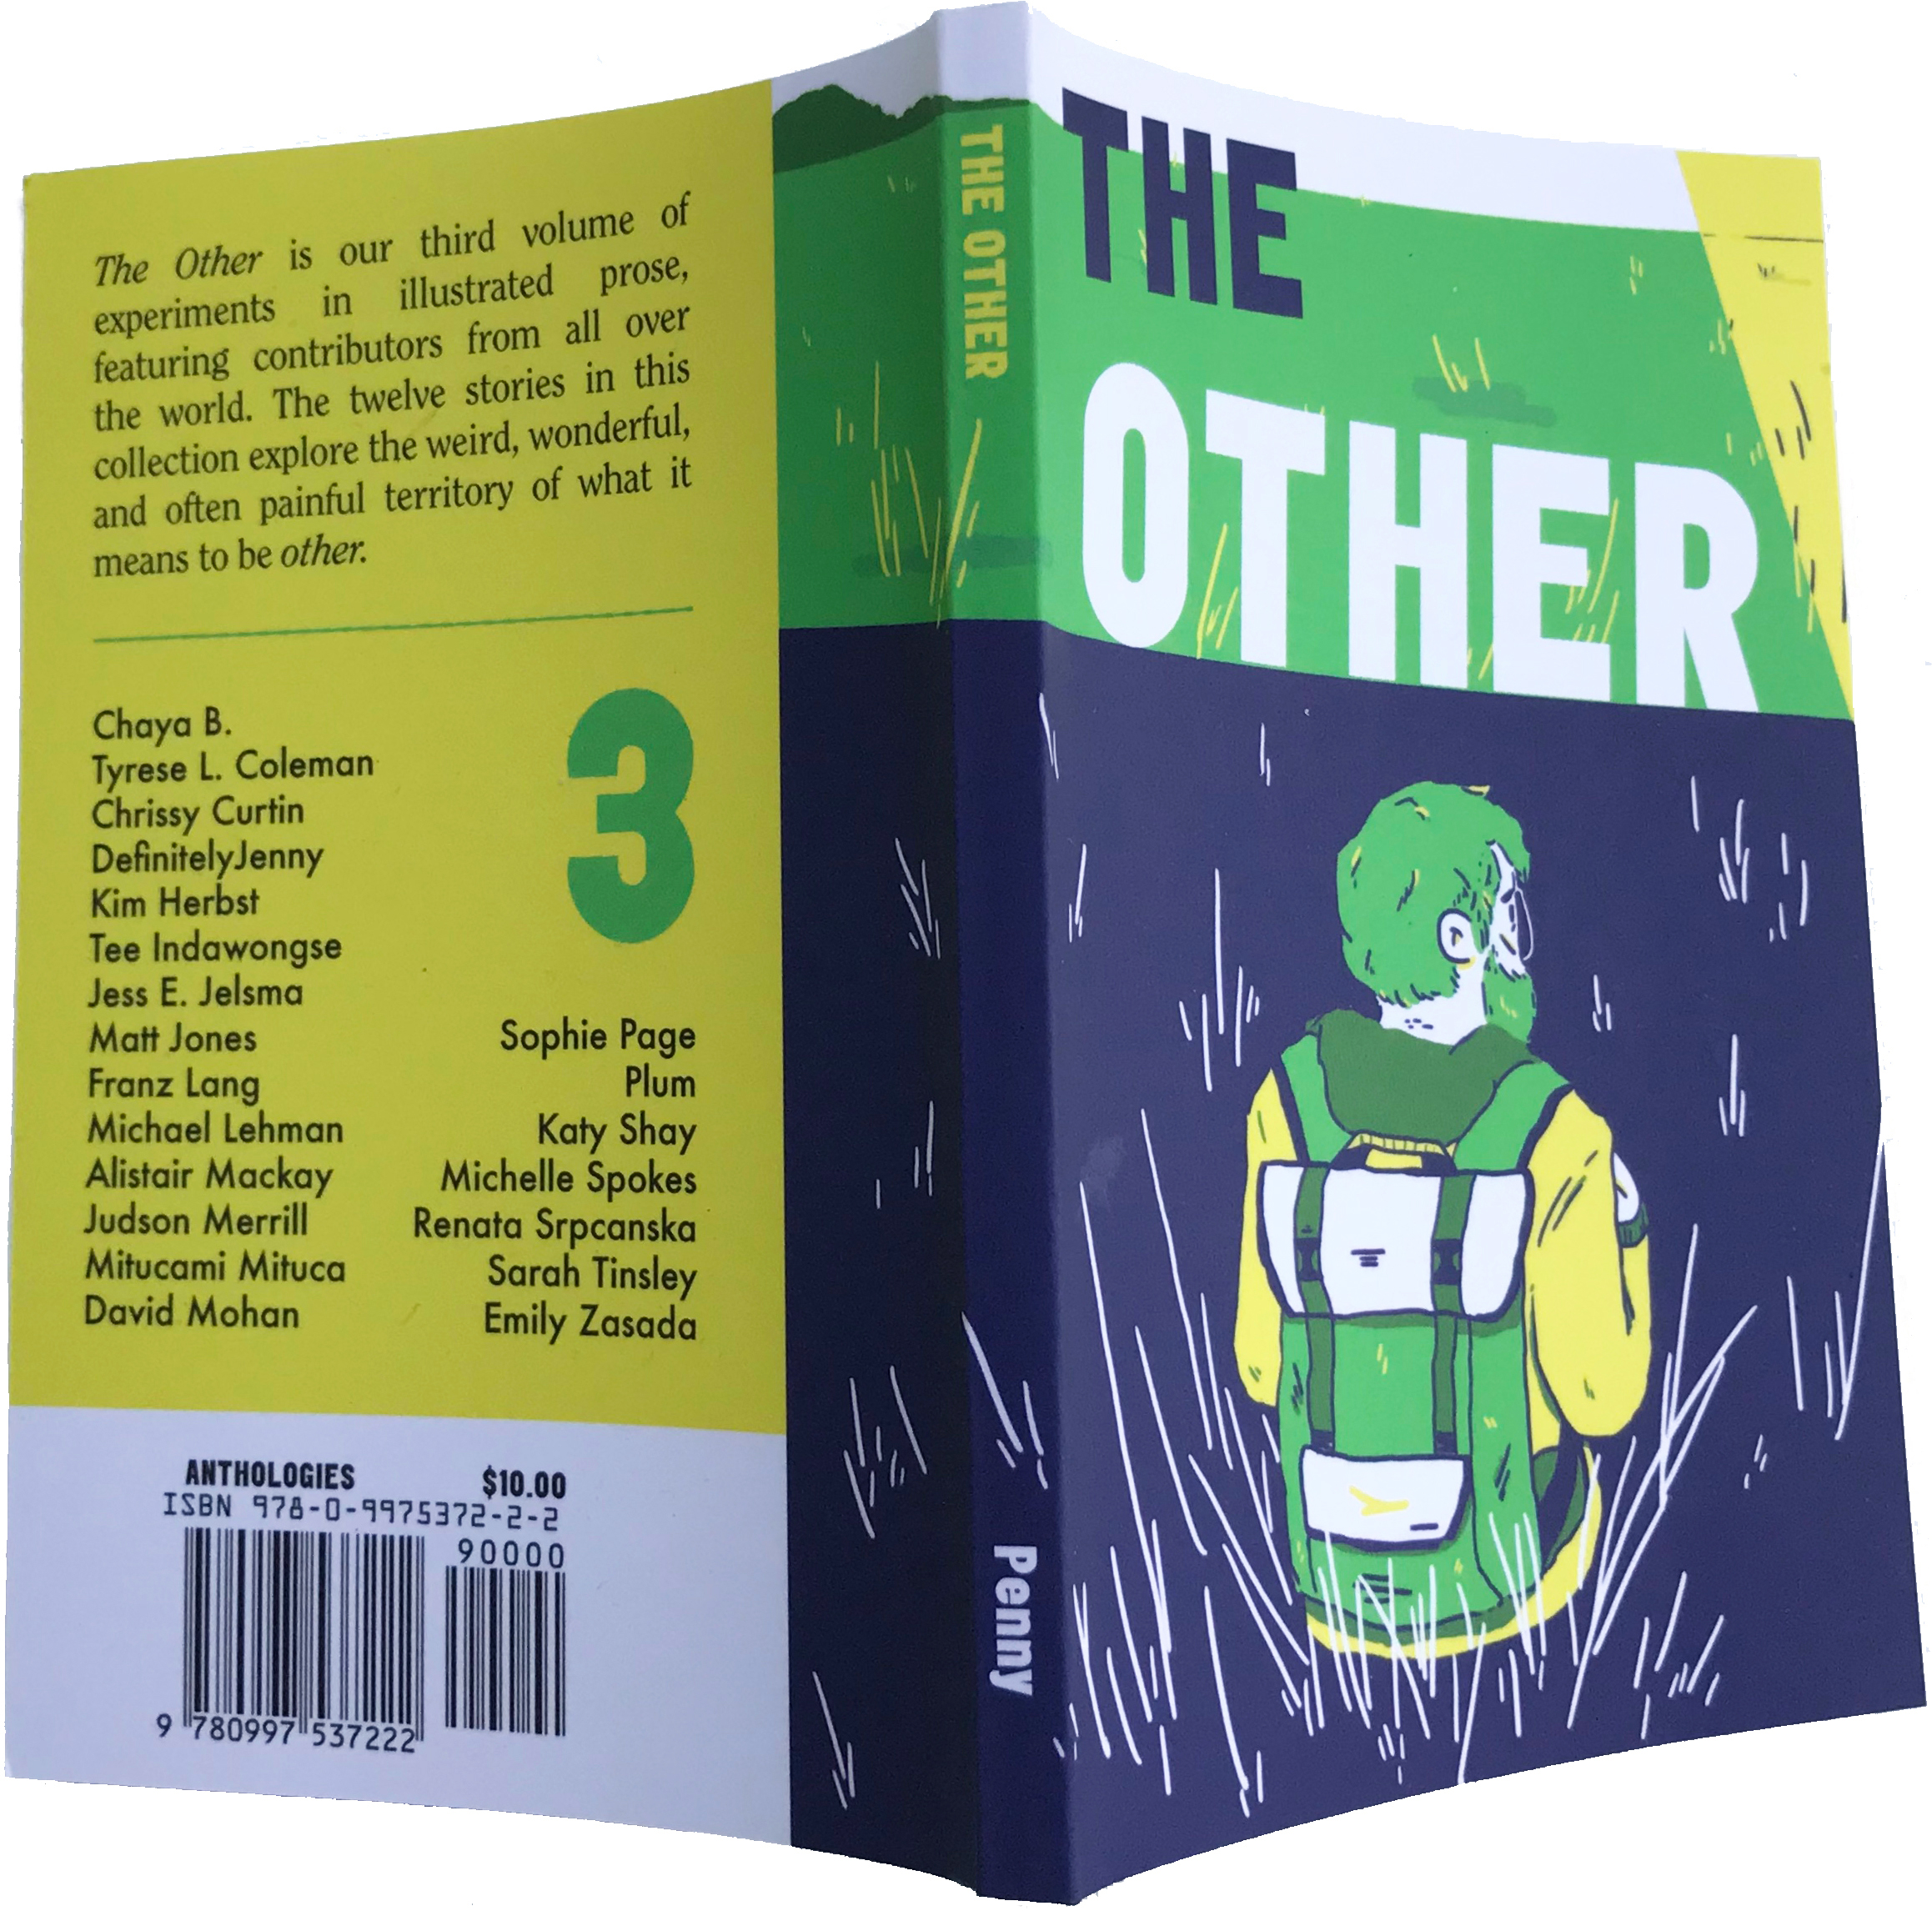 The Other  is our newest volume of  Penny , exploring the weird, wonderful, and often painful territory of what it means to be  'other.'